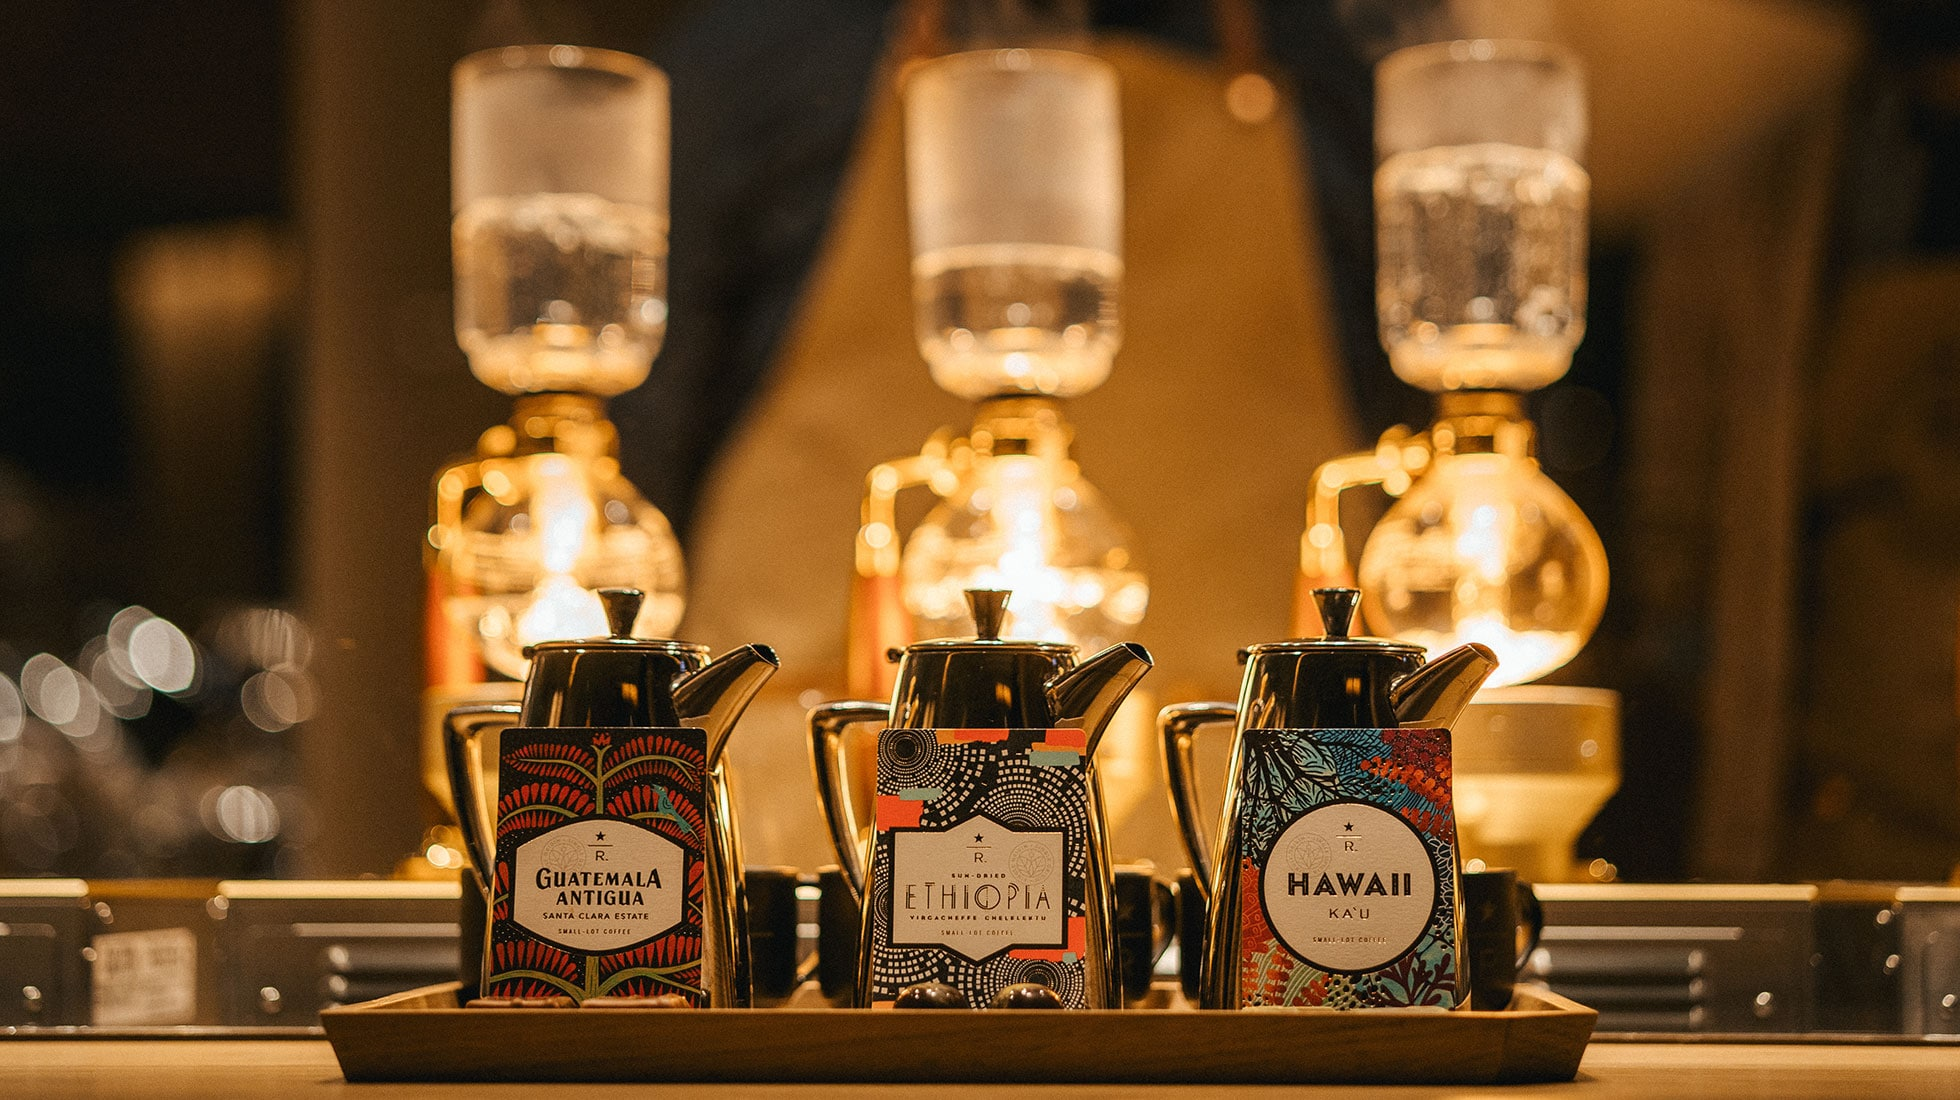 Three carafes of coffee and colorful coffee cards on a wooden tray, with a background including baristas and glowing siphon brewers